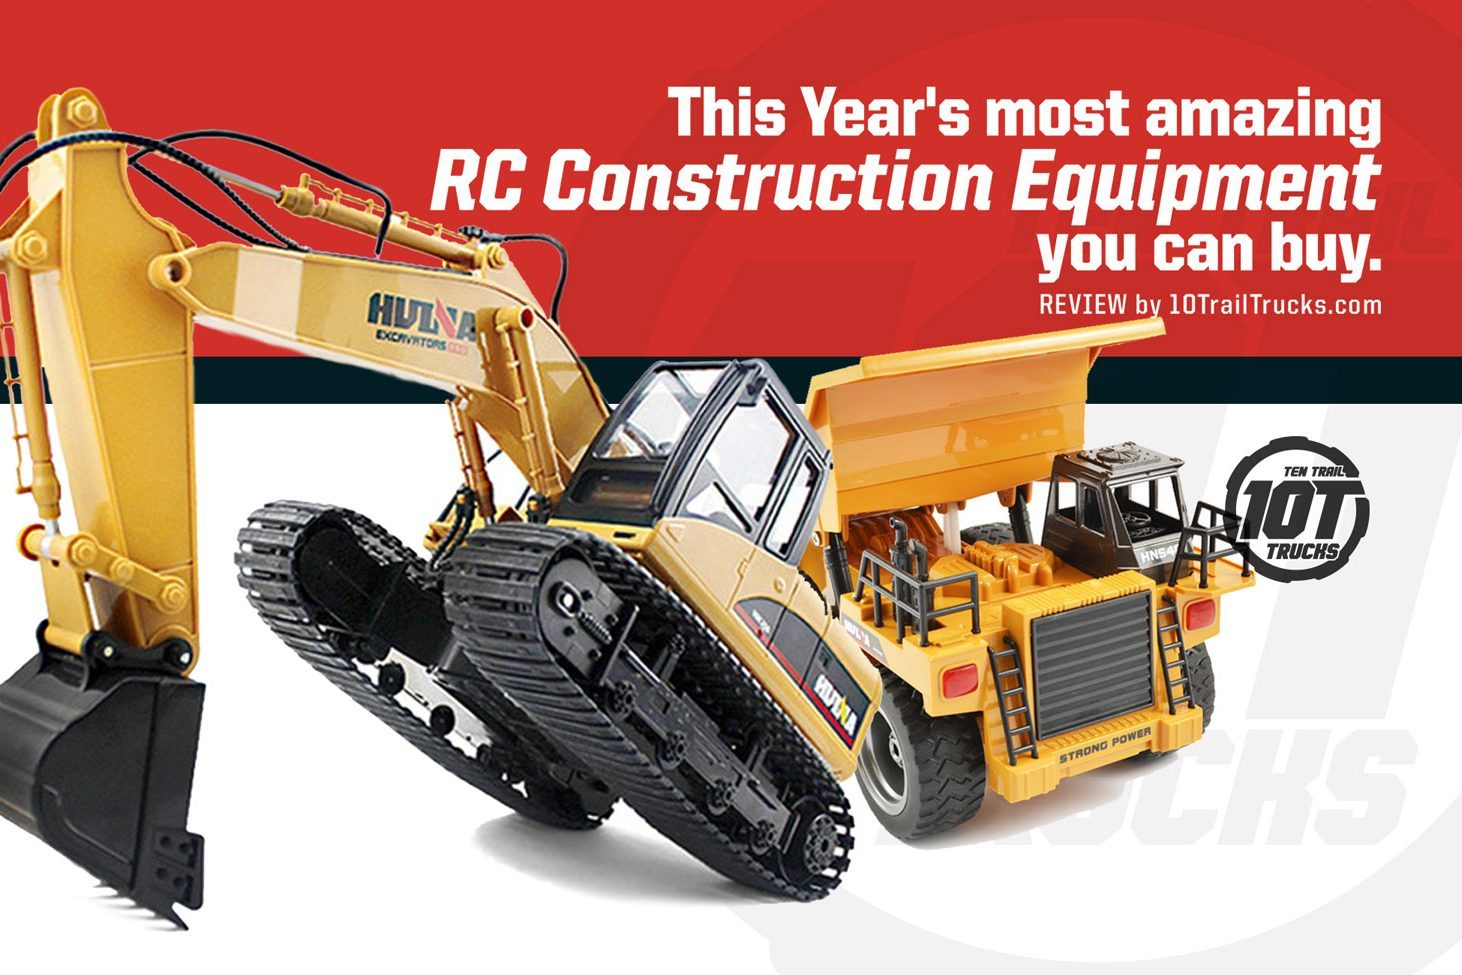 RC CONSTRUCTION EQUIPMENT | BEST VALUE HEAVY WORK VEHICLES [2020 GUIDE]